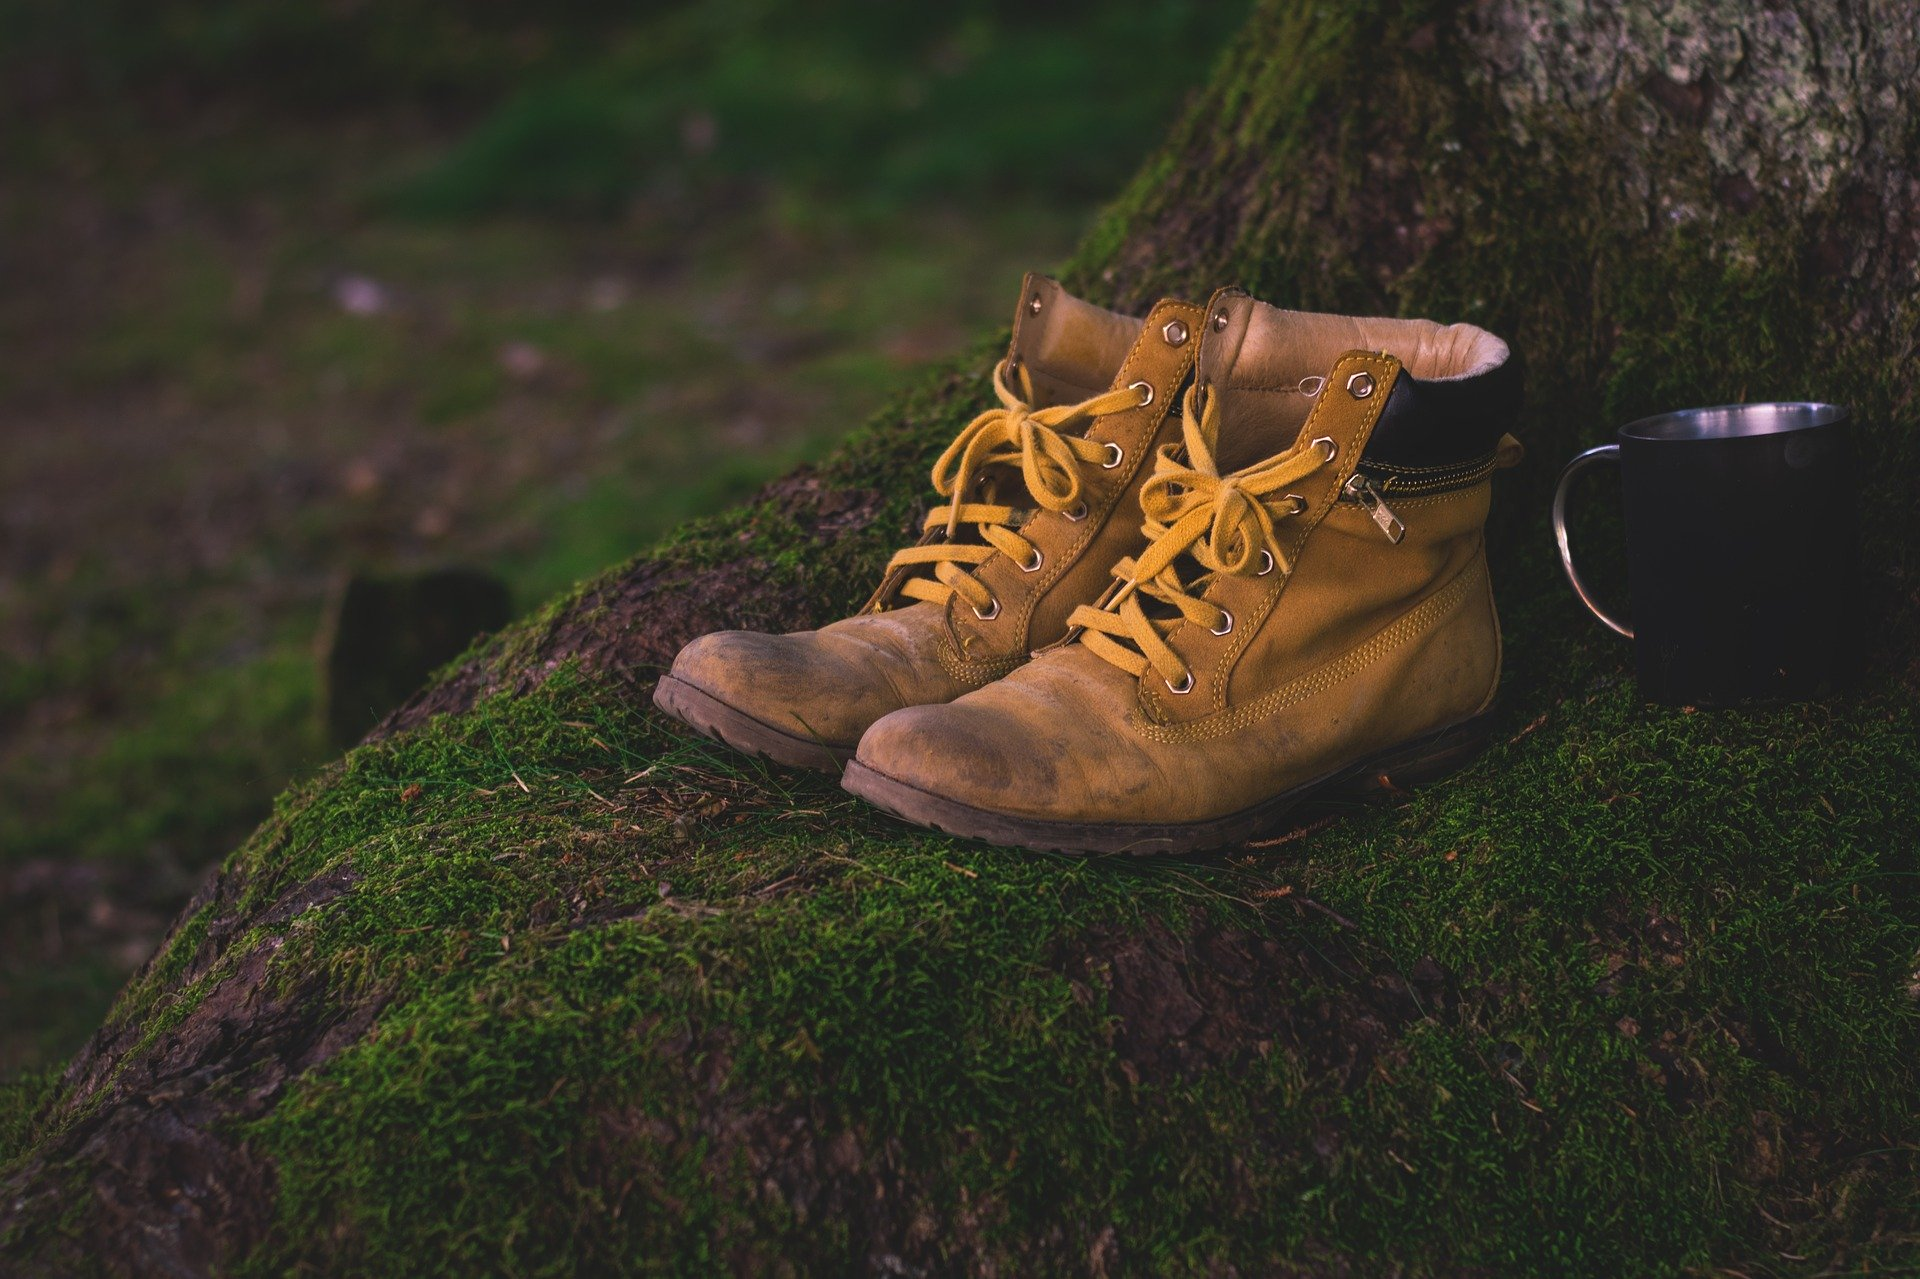 When should you get rid of your shoes?